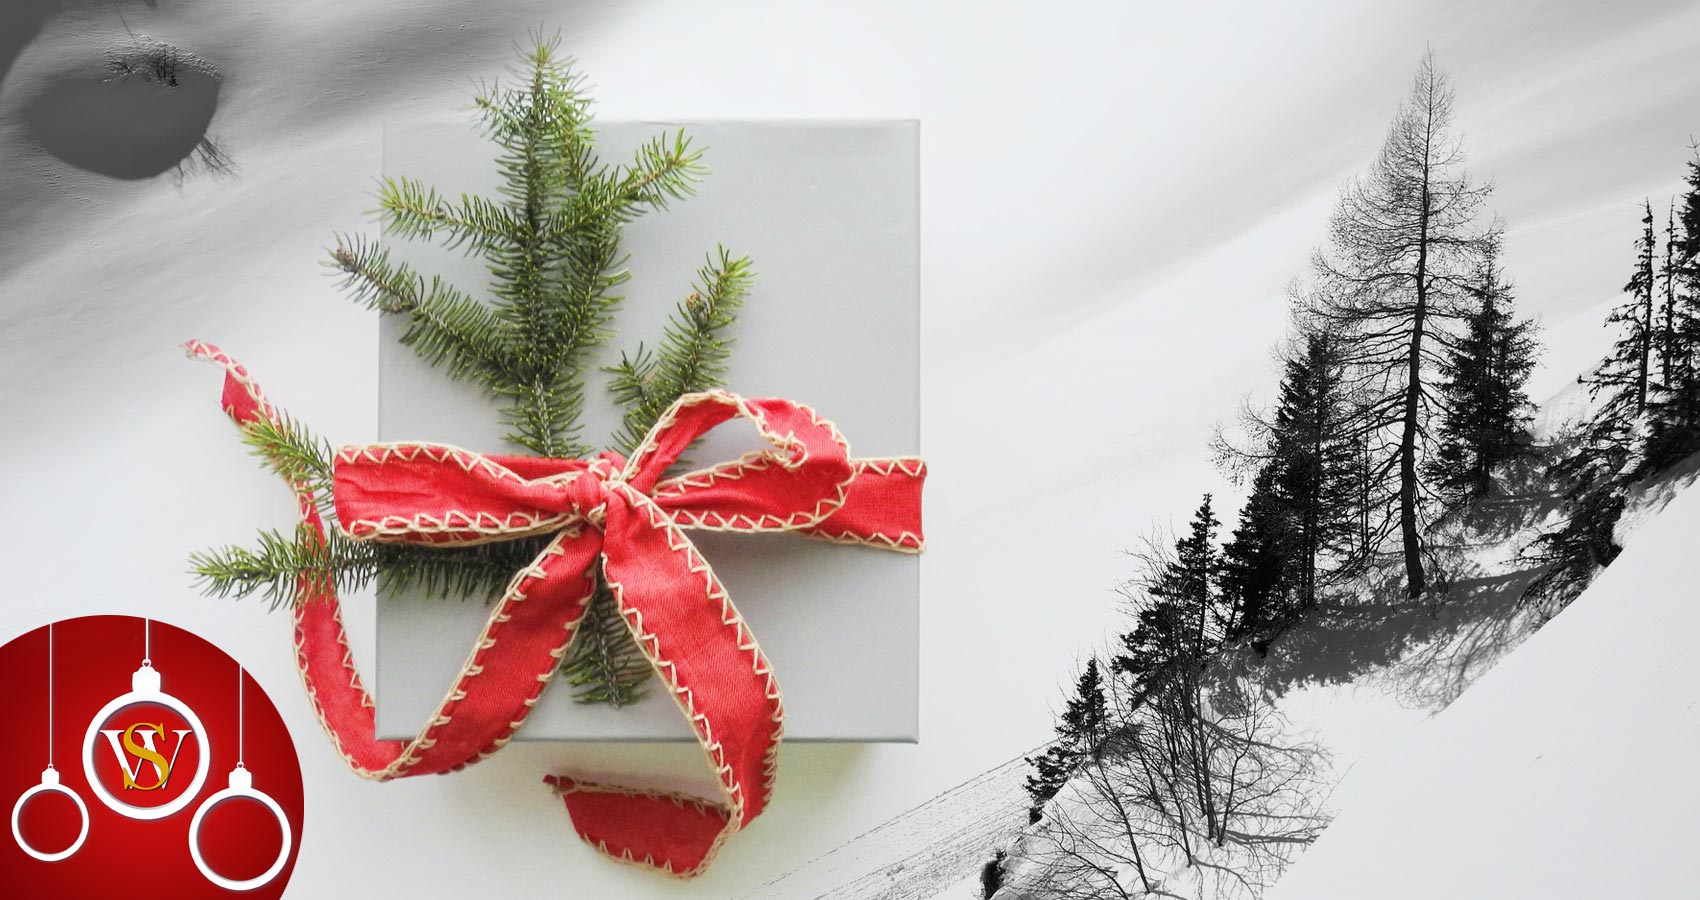 The Christmas Gift, poetry by James Walmsley at Spillwords.com